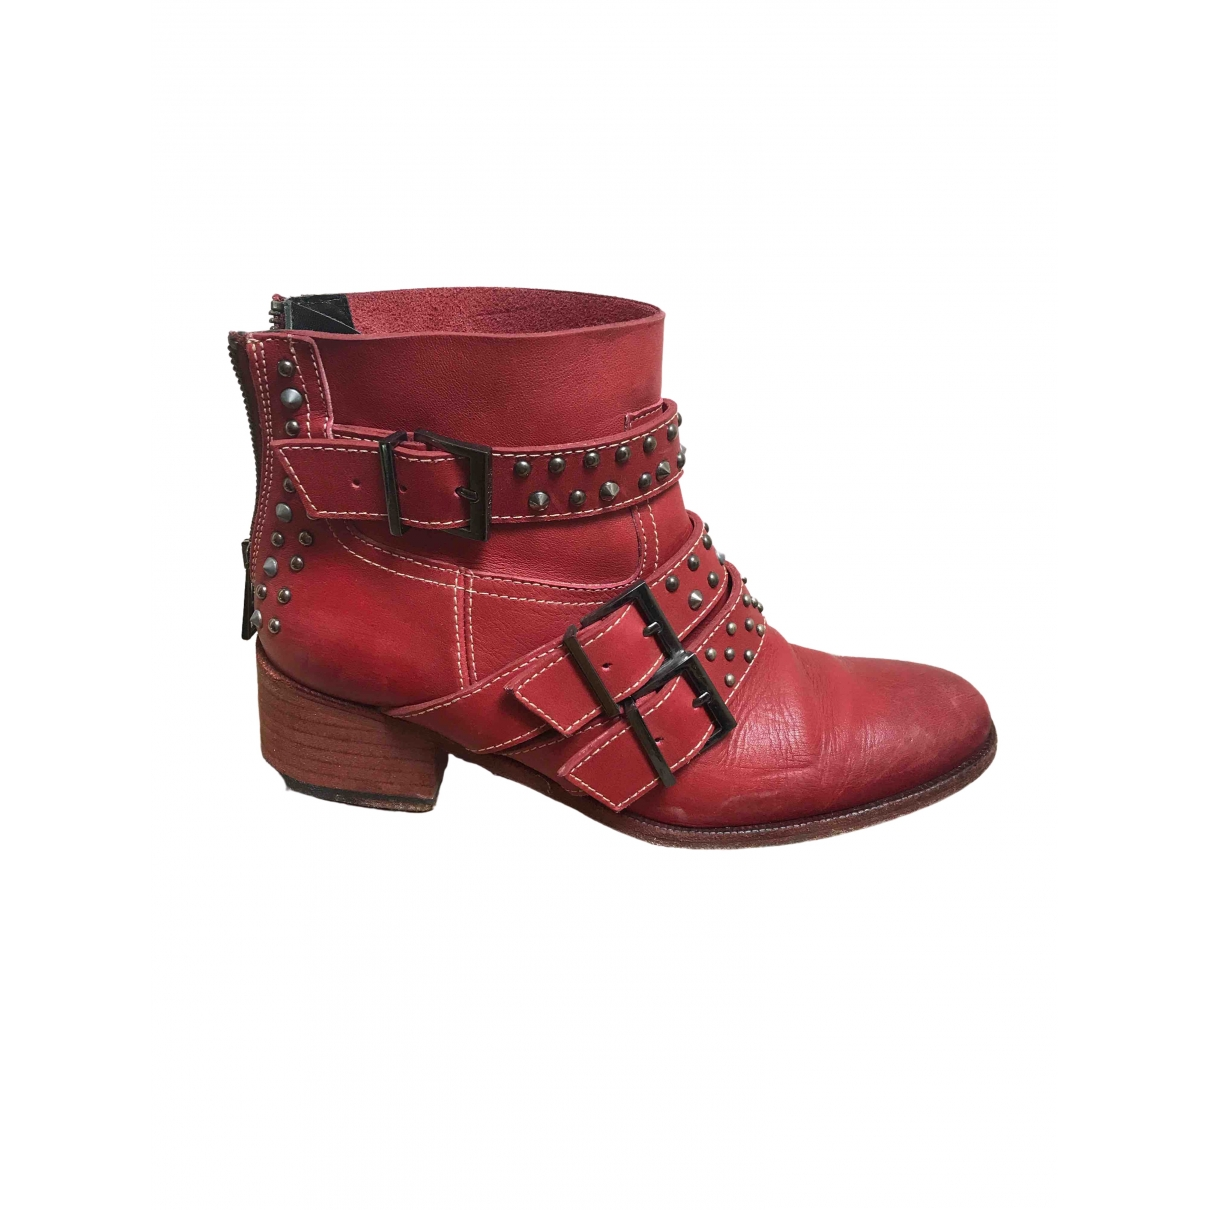 Zadig & Voltaire \N Red Leather Boots for Women 39 EU